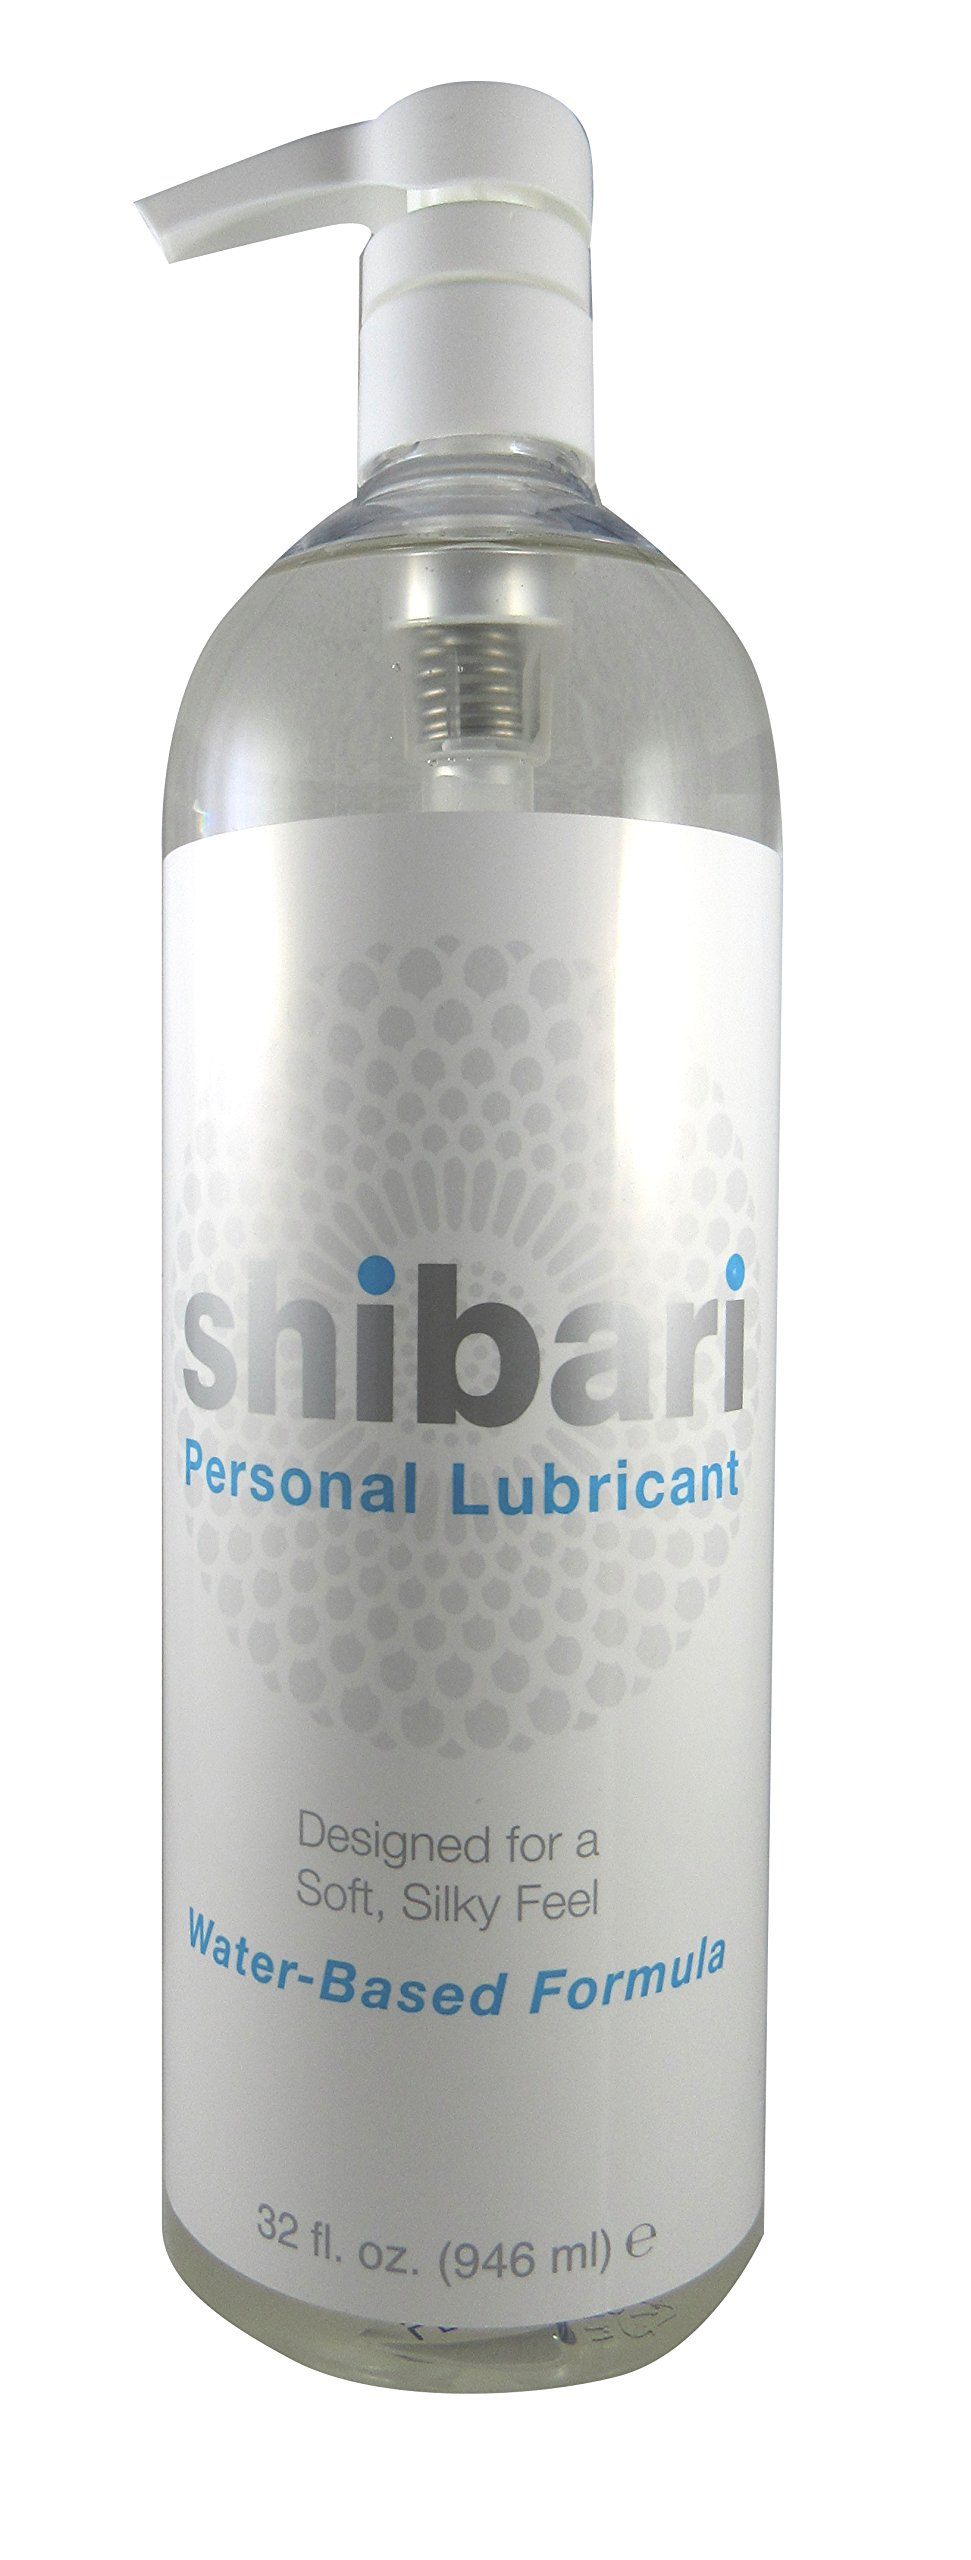 Shibari Water Based Intimate Lubricant, 32oz with Pump